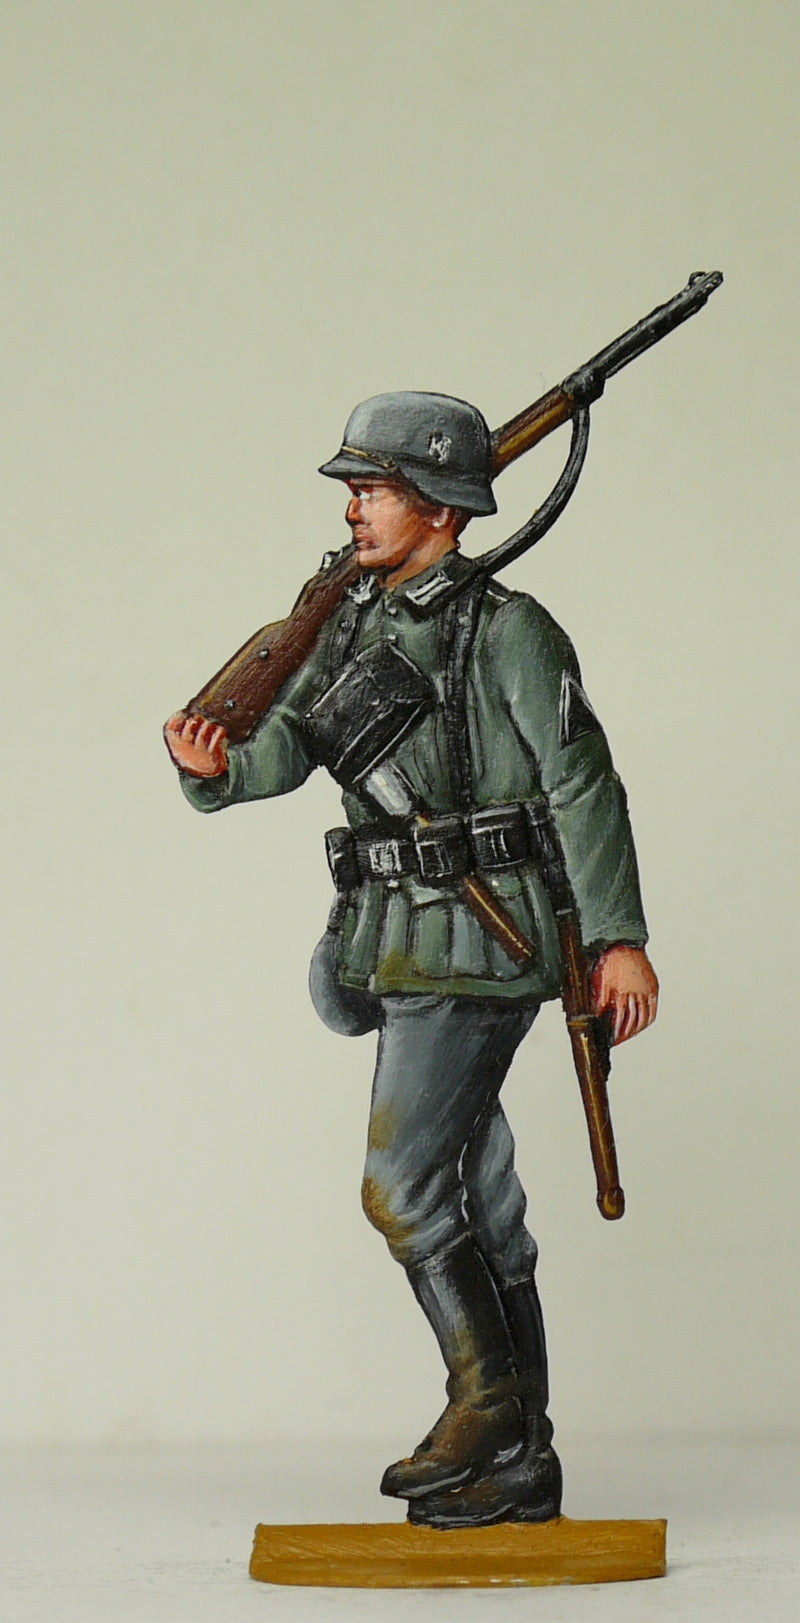 Soldier with carbine over schoulder - Glorious Empires-Historical Miniatures